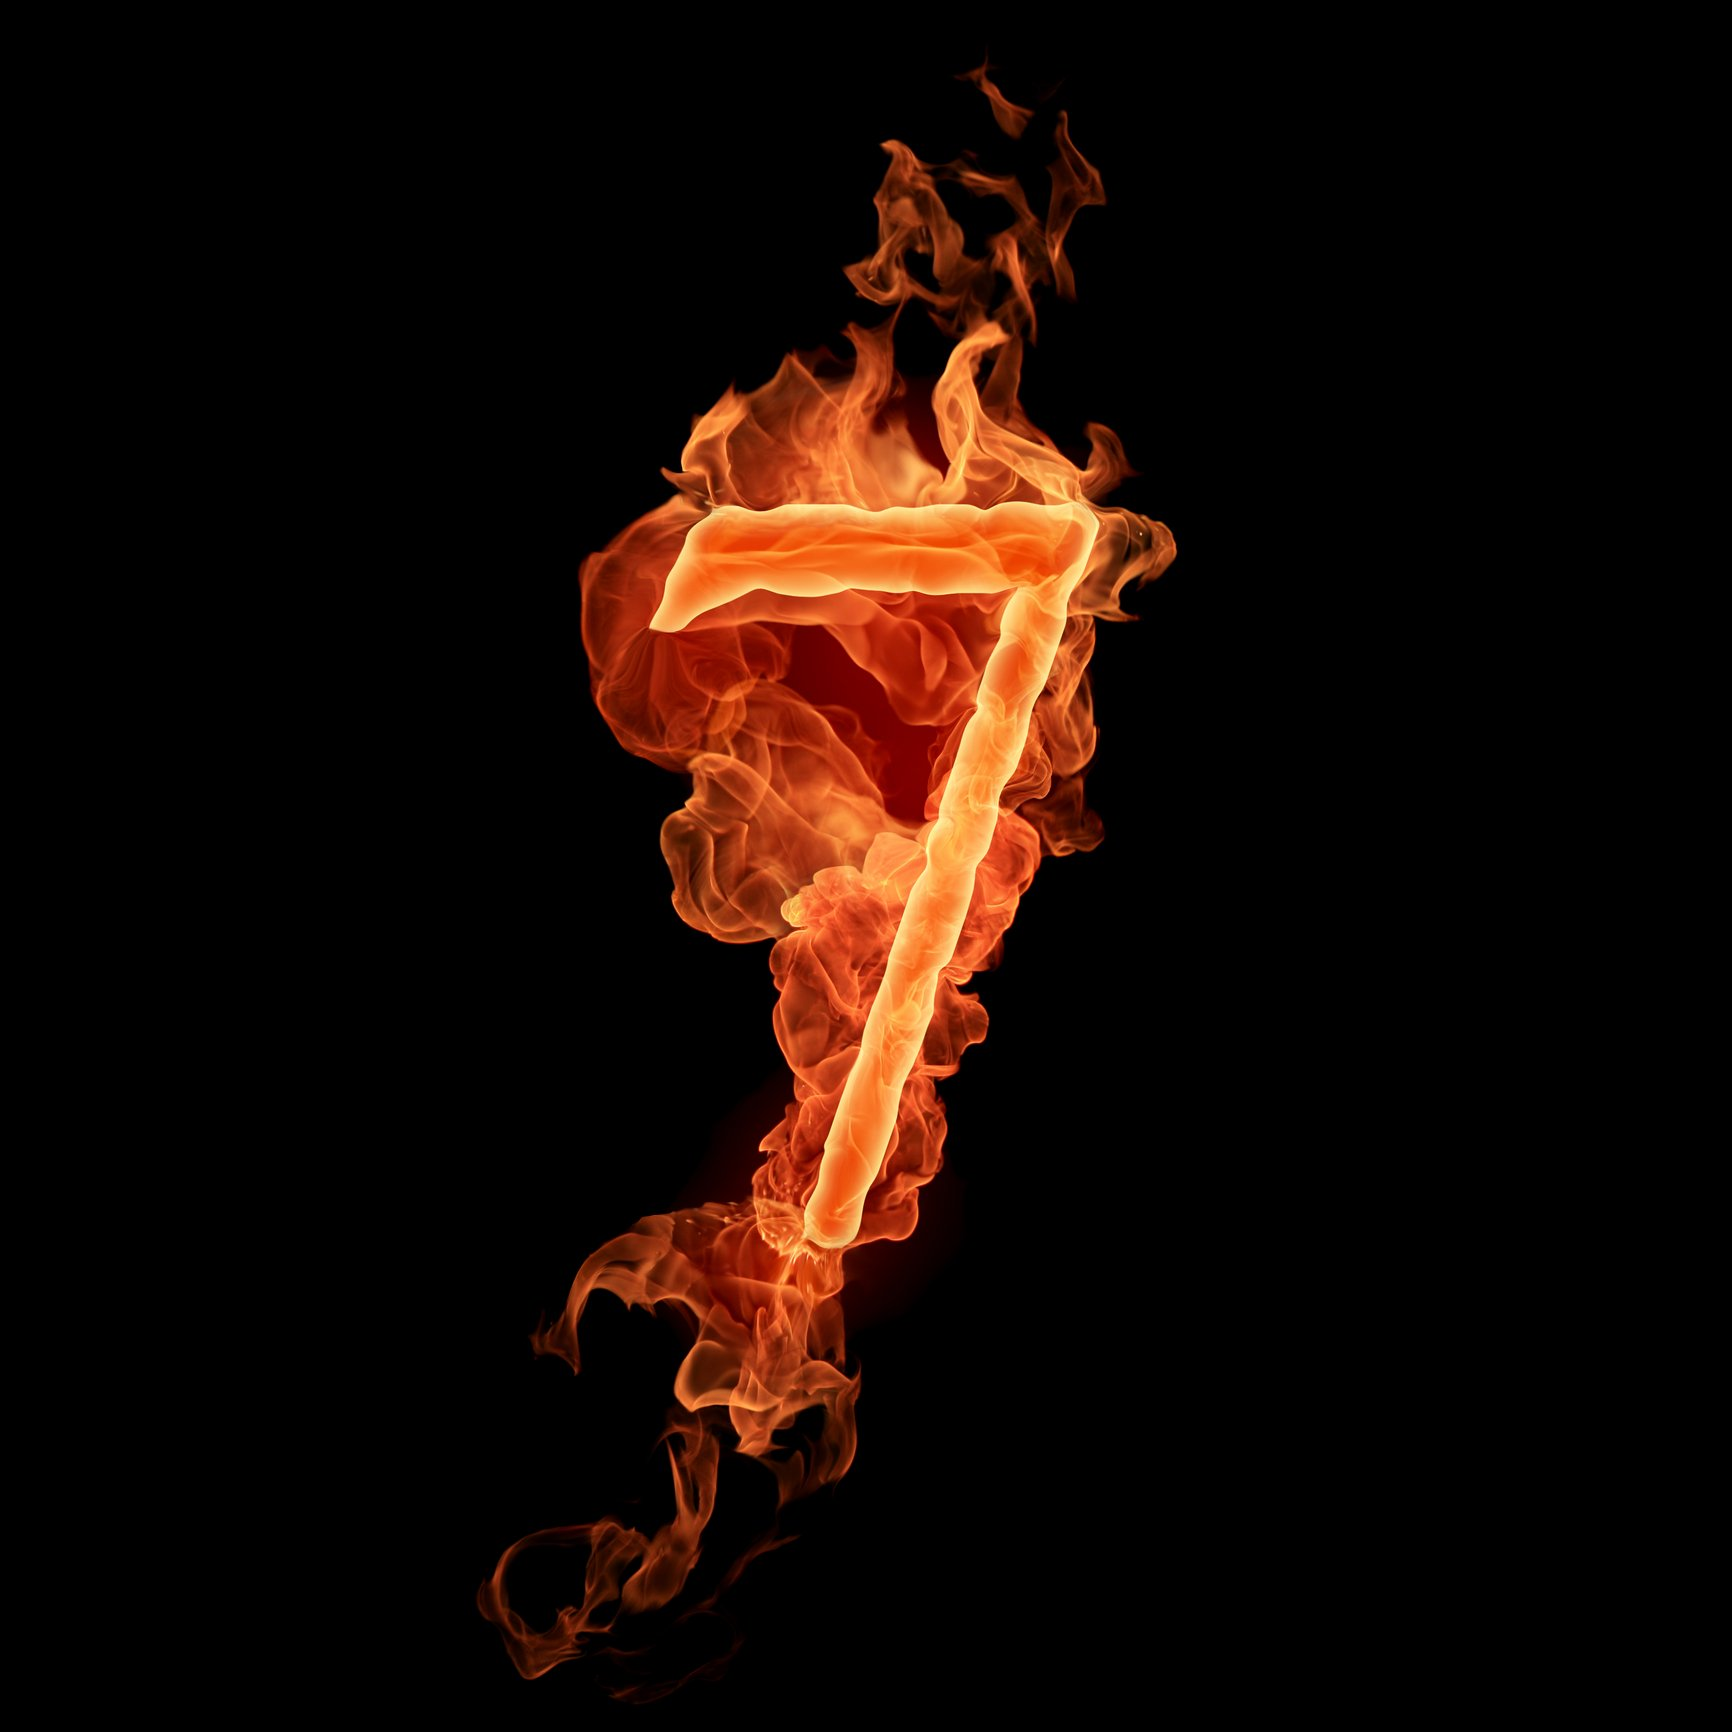 Fire Letters Wallpapers HD 3000X3000 A Z0 9   Photo 36 of 36 phombo 1732x1732